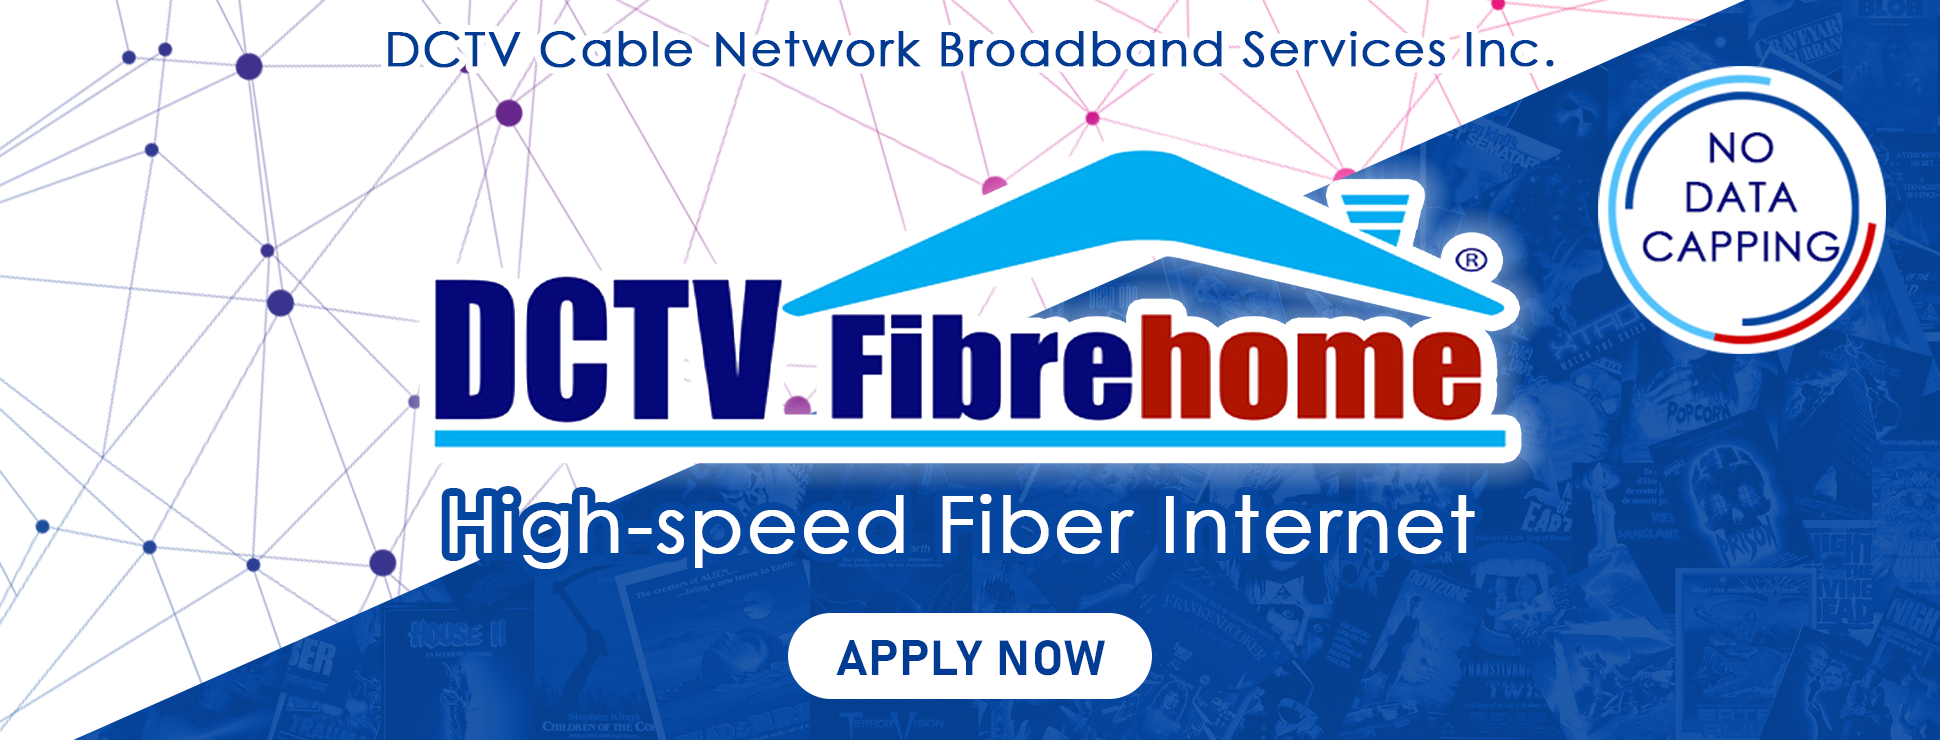 No capping fiber optic connectivity - FIber to the Home